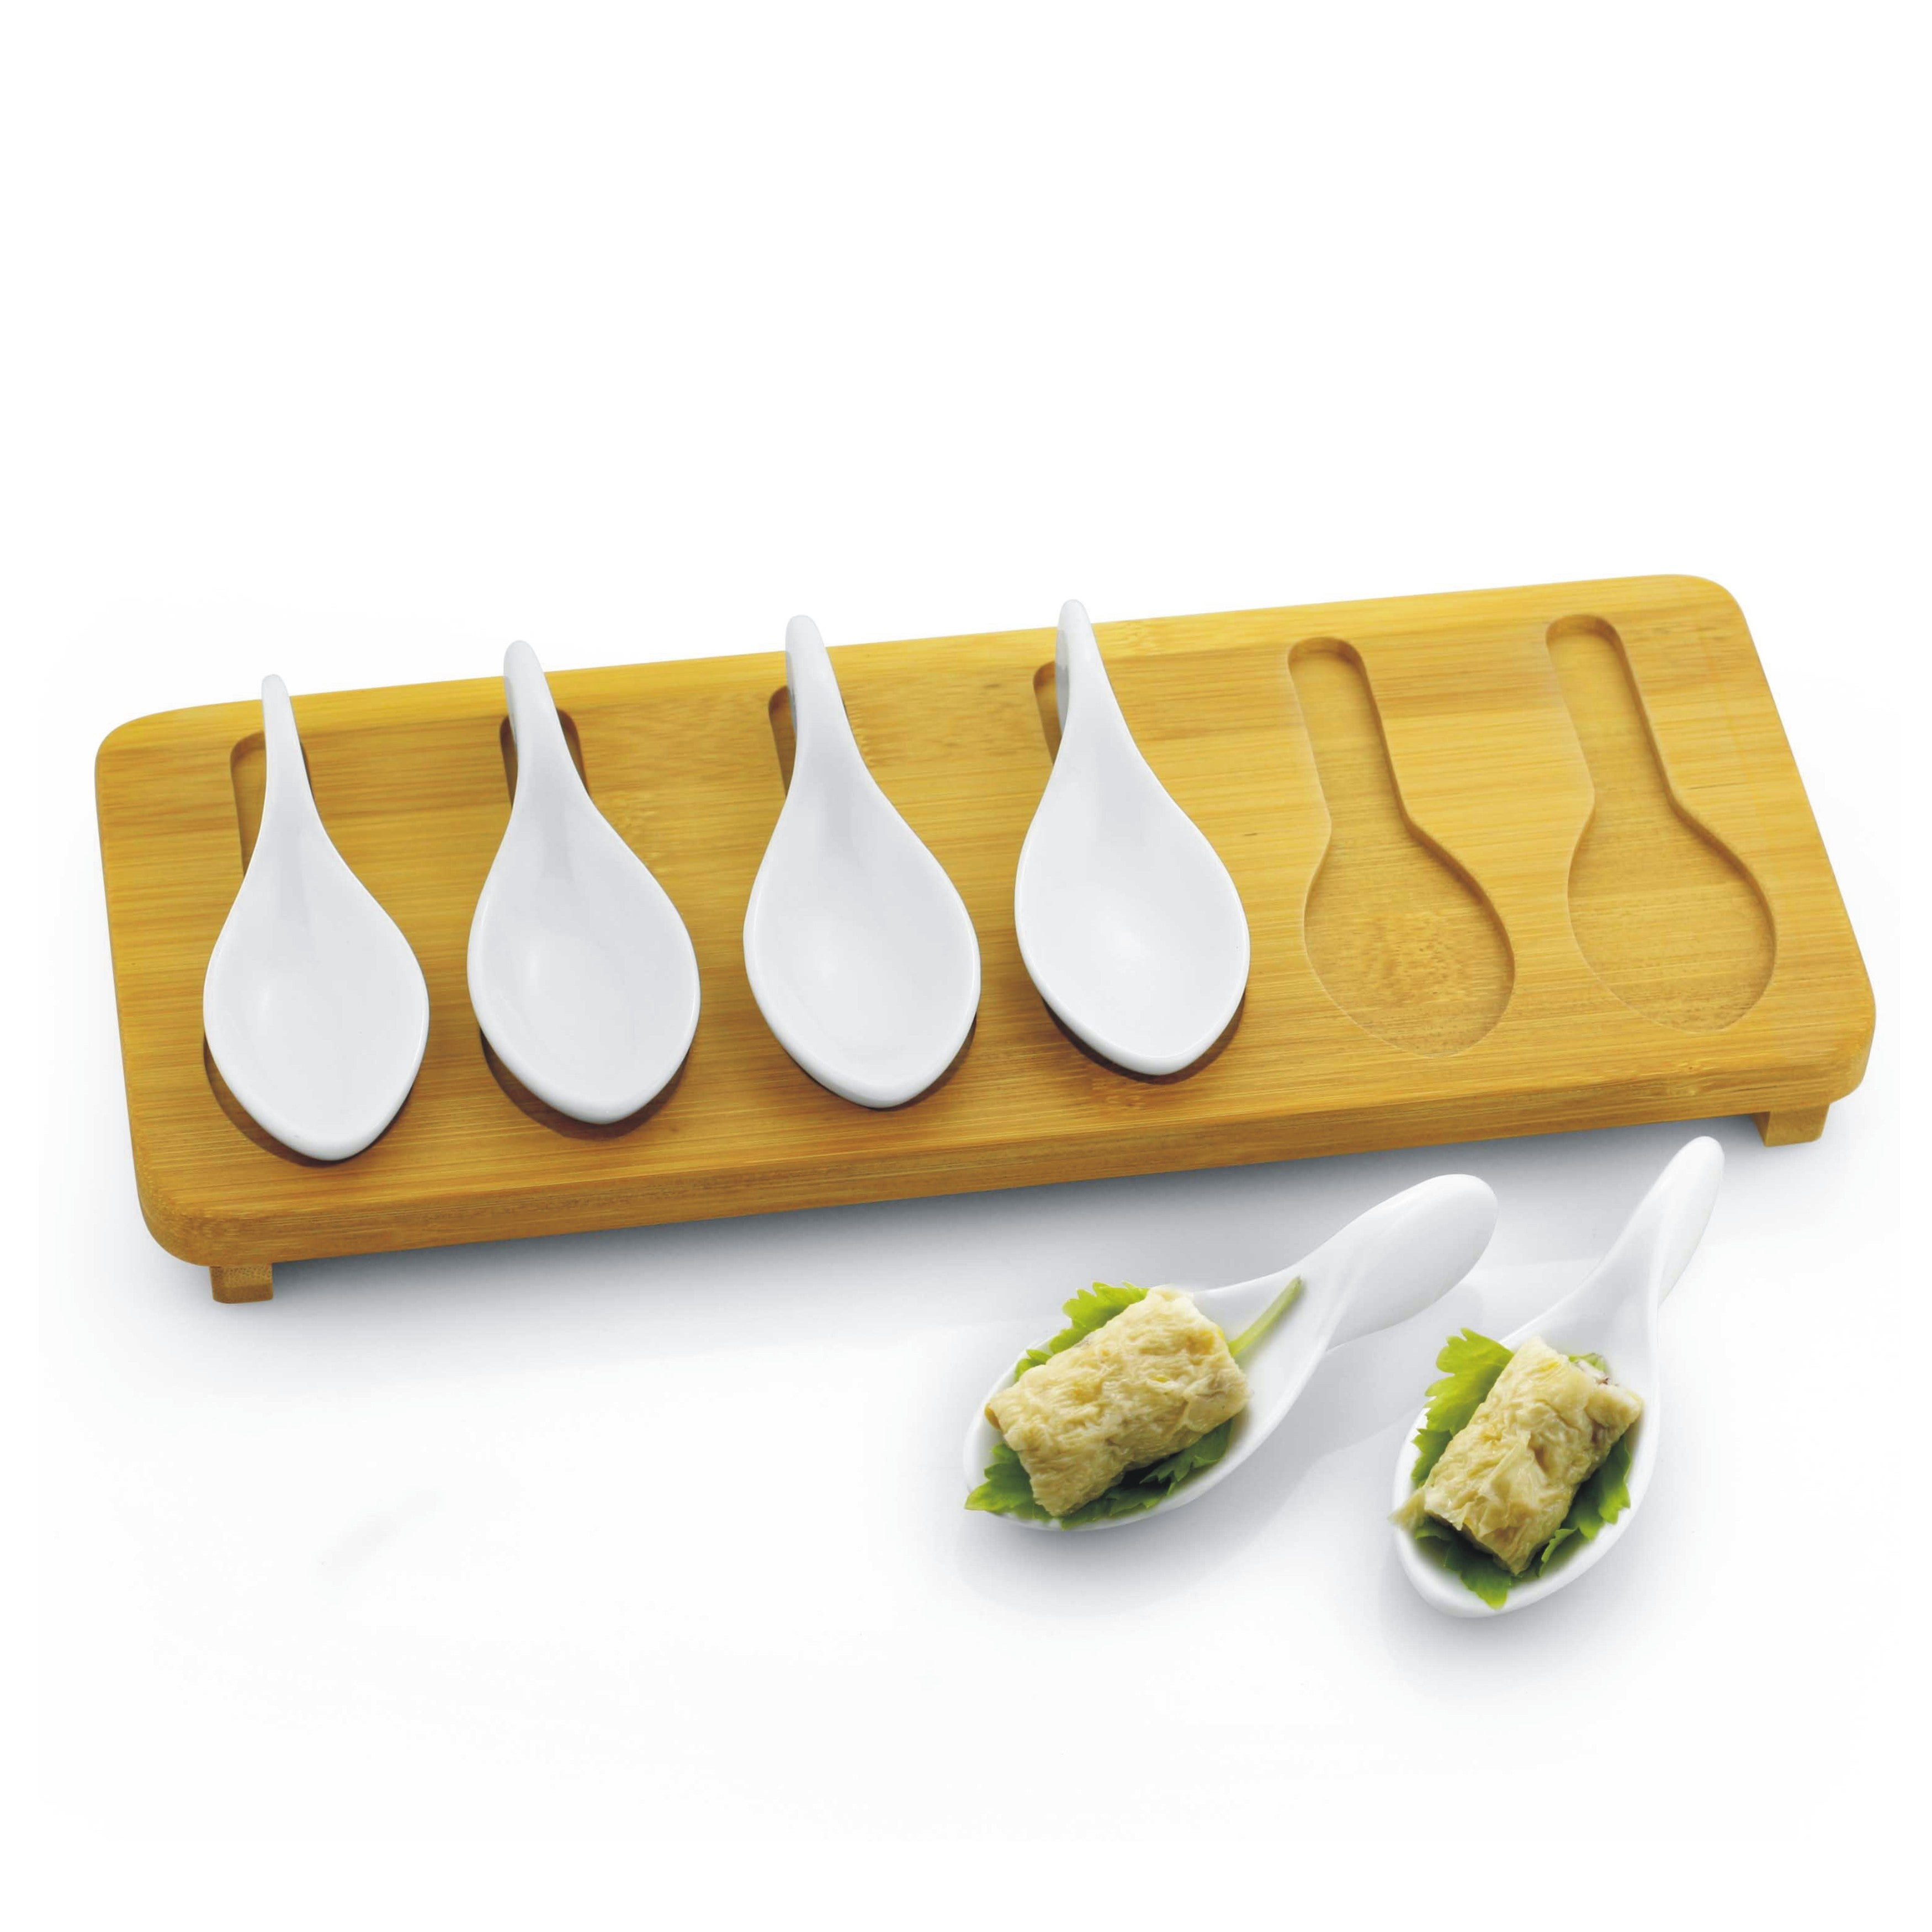 7-piece Porcelain Tasting Spoons with Bamboo Tray Set